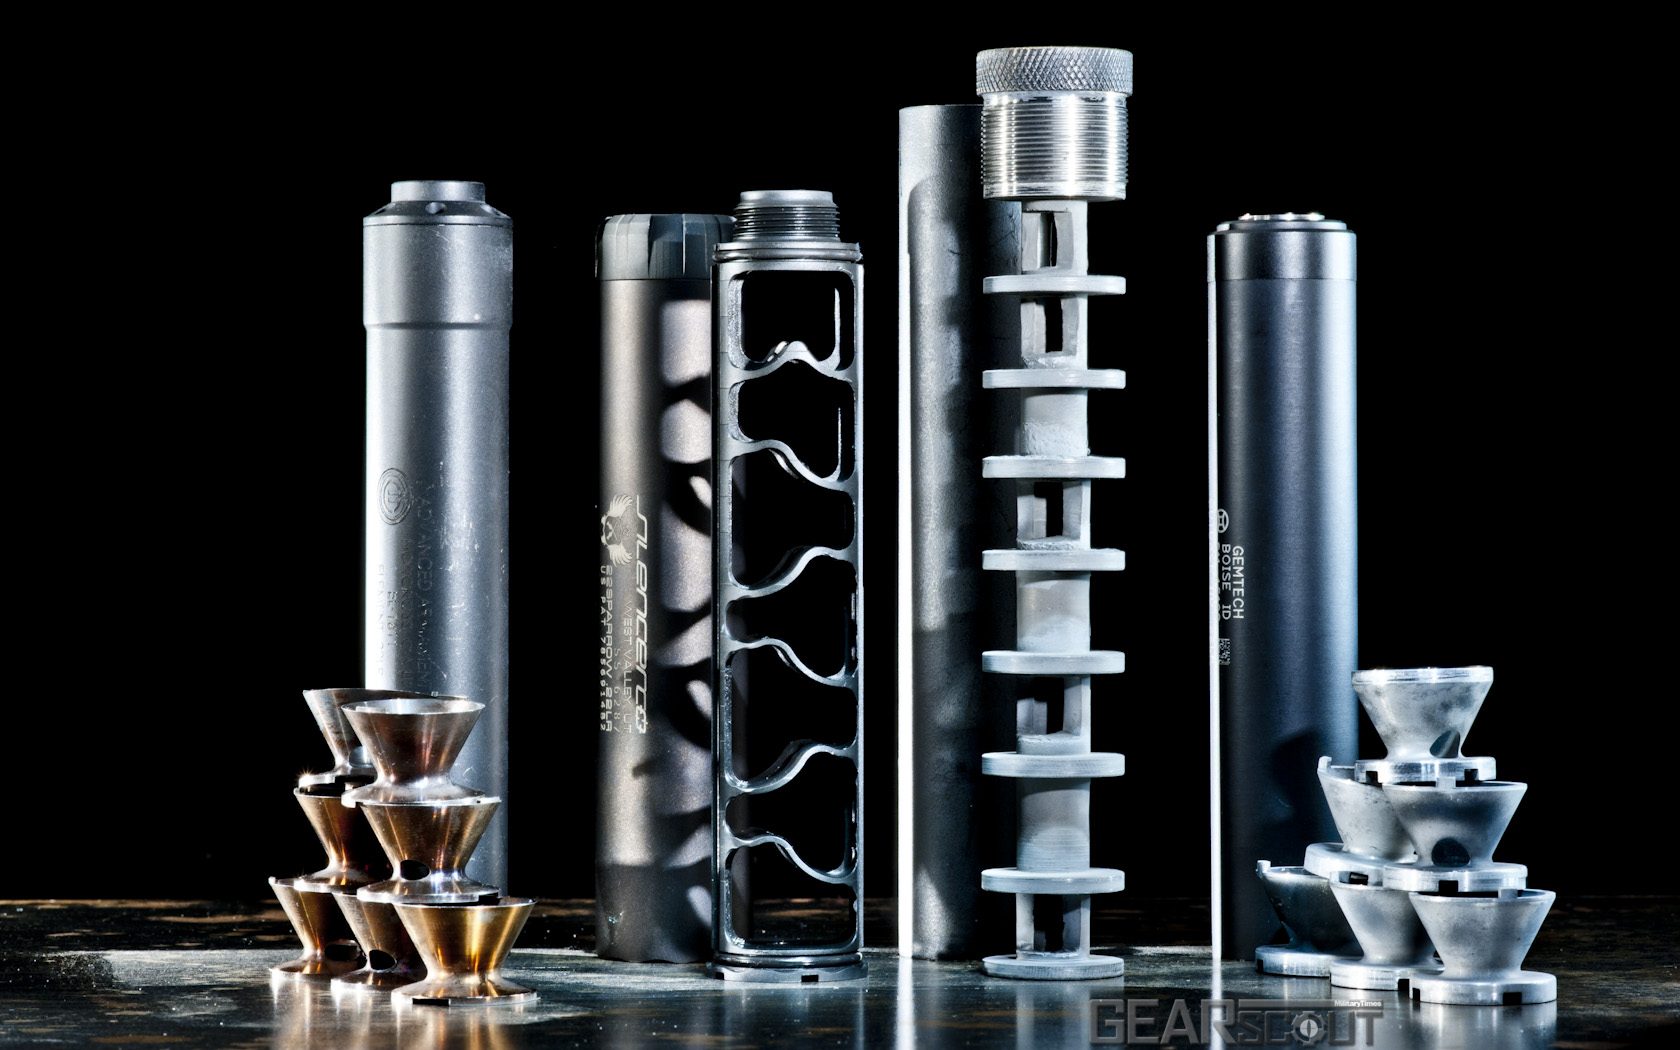 Wallpaper: .22 Cans on homemade silencers and suppressors, homemade weapons, homemade spanner wrench, homemade septic tank design, homemade guns design, homemade rifle design, homemade airship design, homemade hydraulic arm design, homemade gun targets, homemade wedding cards design, homemade suppressors plans, homemade lamp design, homemade gun blueprints, homemade hdtv antenna design, homemade plate design, homemade airgun valve, homemade muffler design, homemade gun suppressors, homemade biofilter design, homemade smokehouse design,